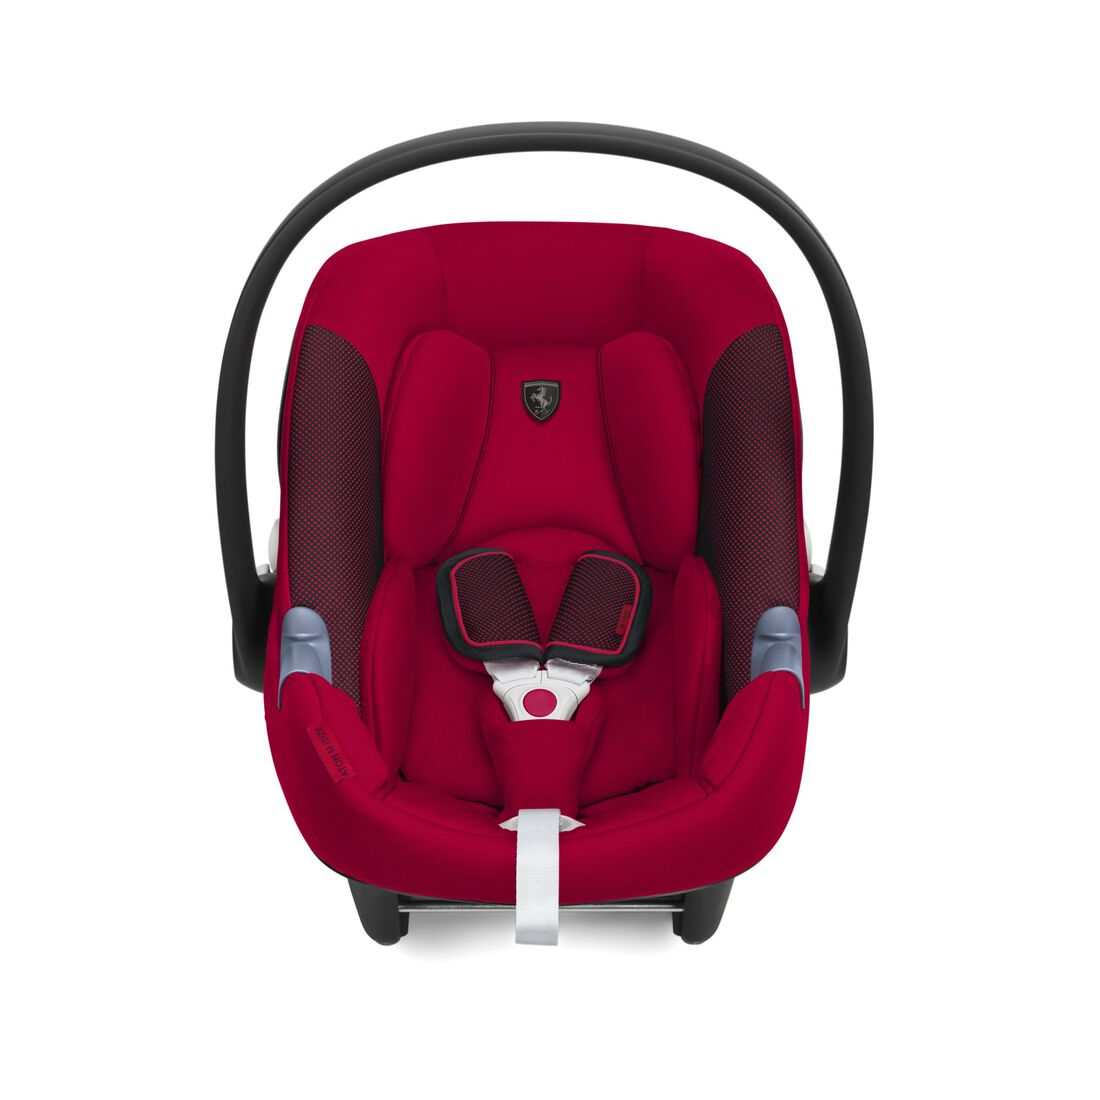 CYBEX Aton M i-Size - Ferrari Racing Red in Ferrari Racing Red large Bild 2